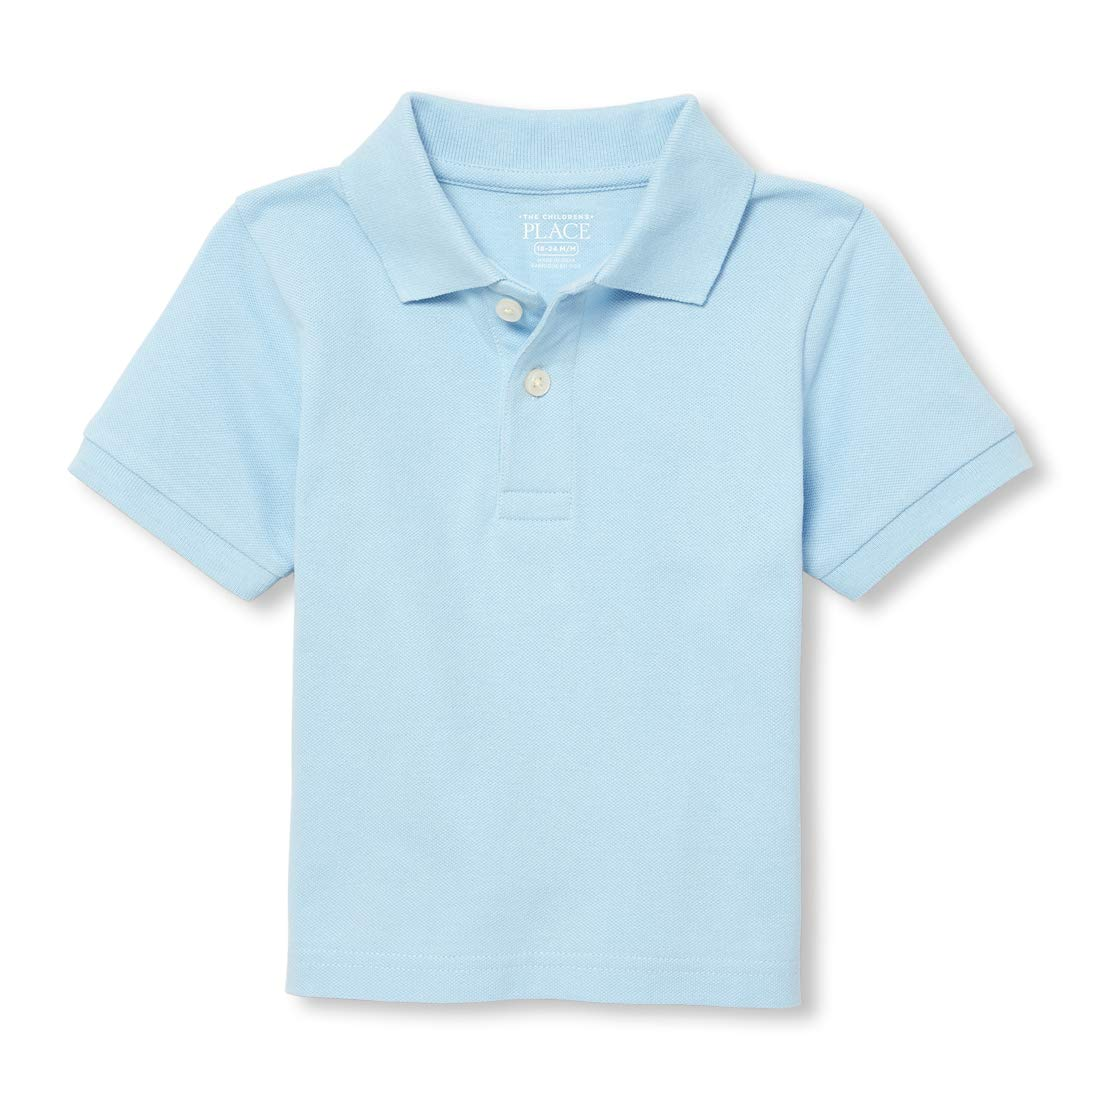 The Childrens Place Baby Boys Short Sleeve Polos